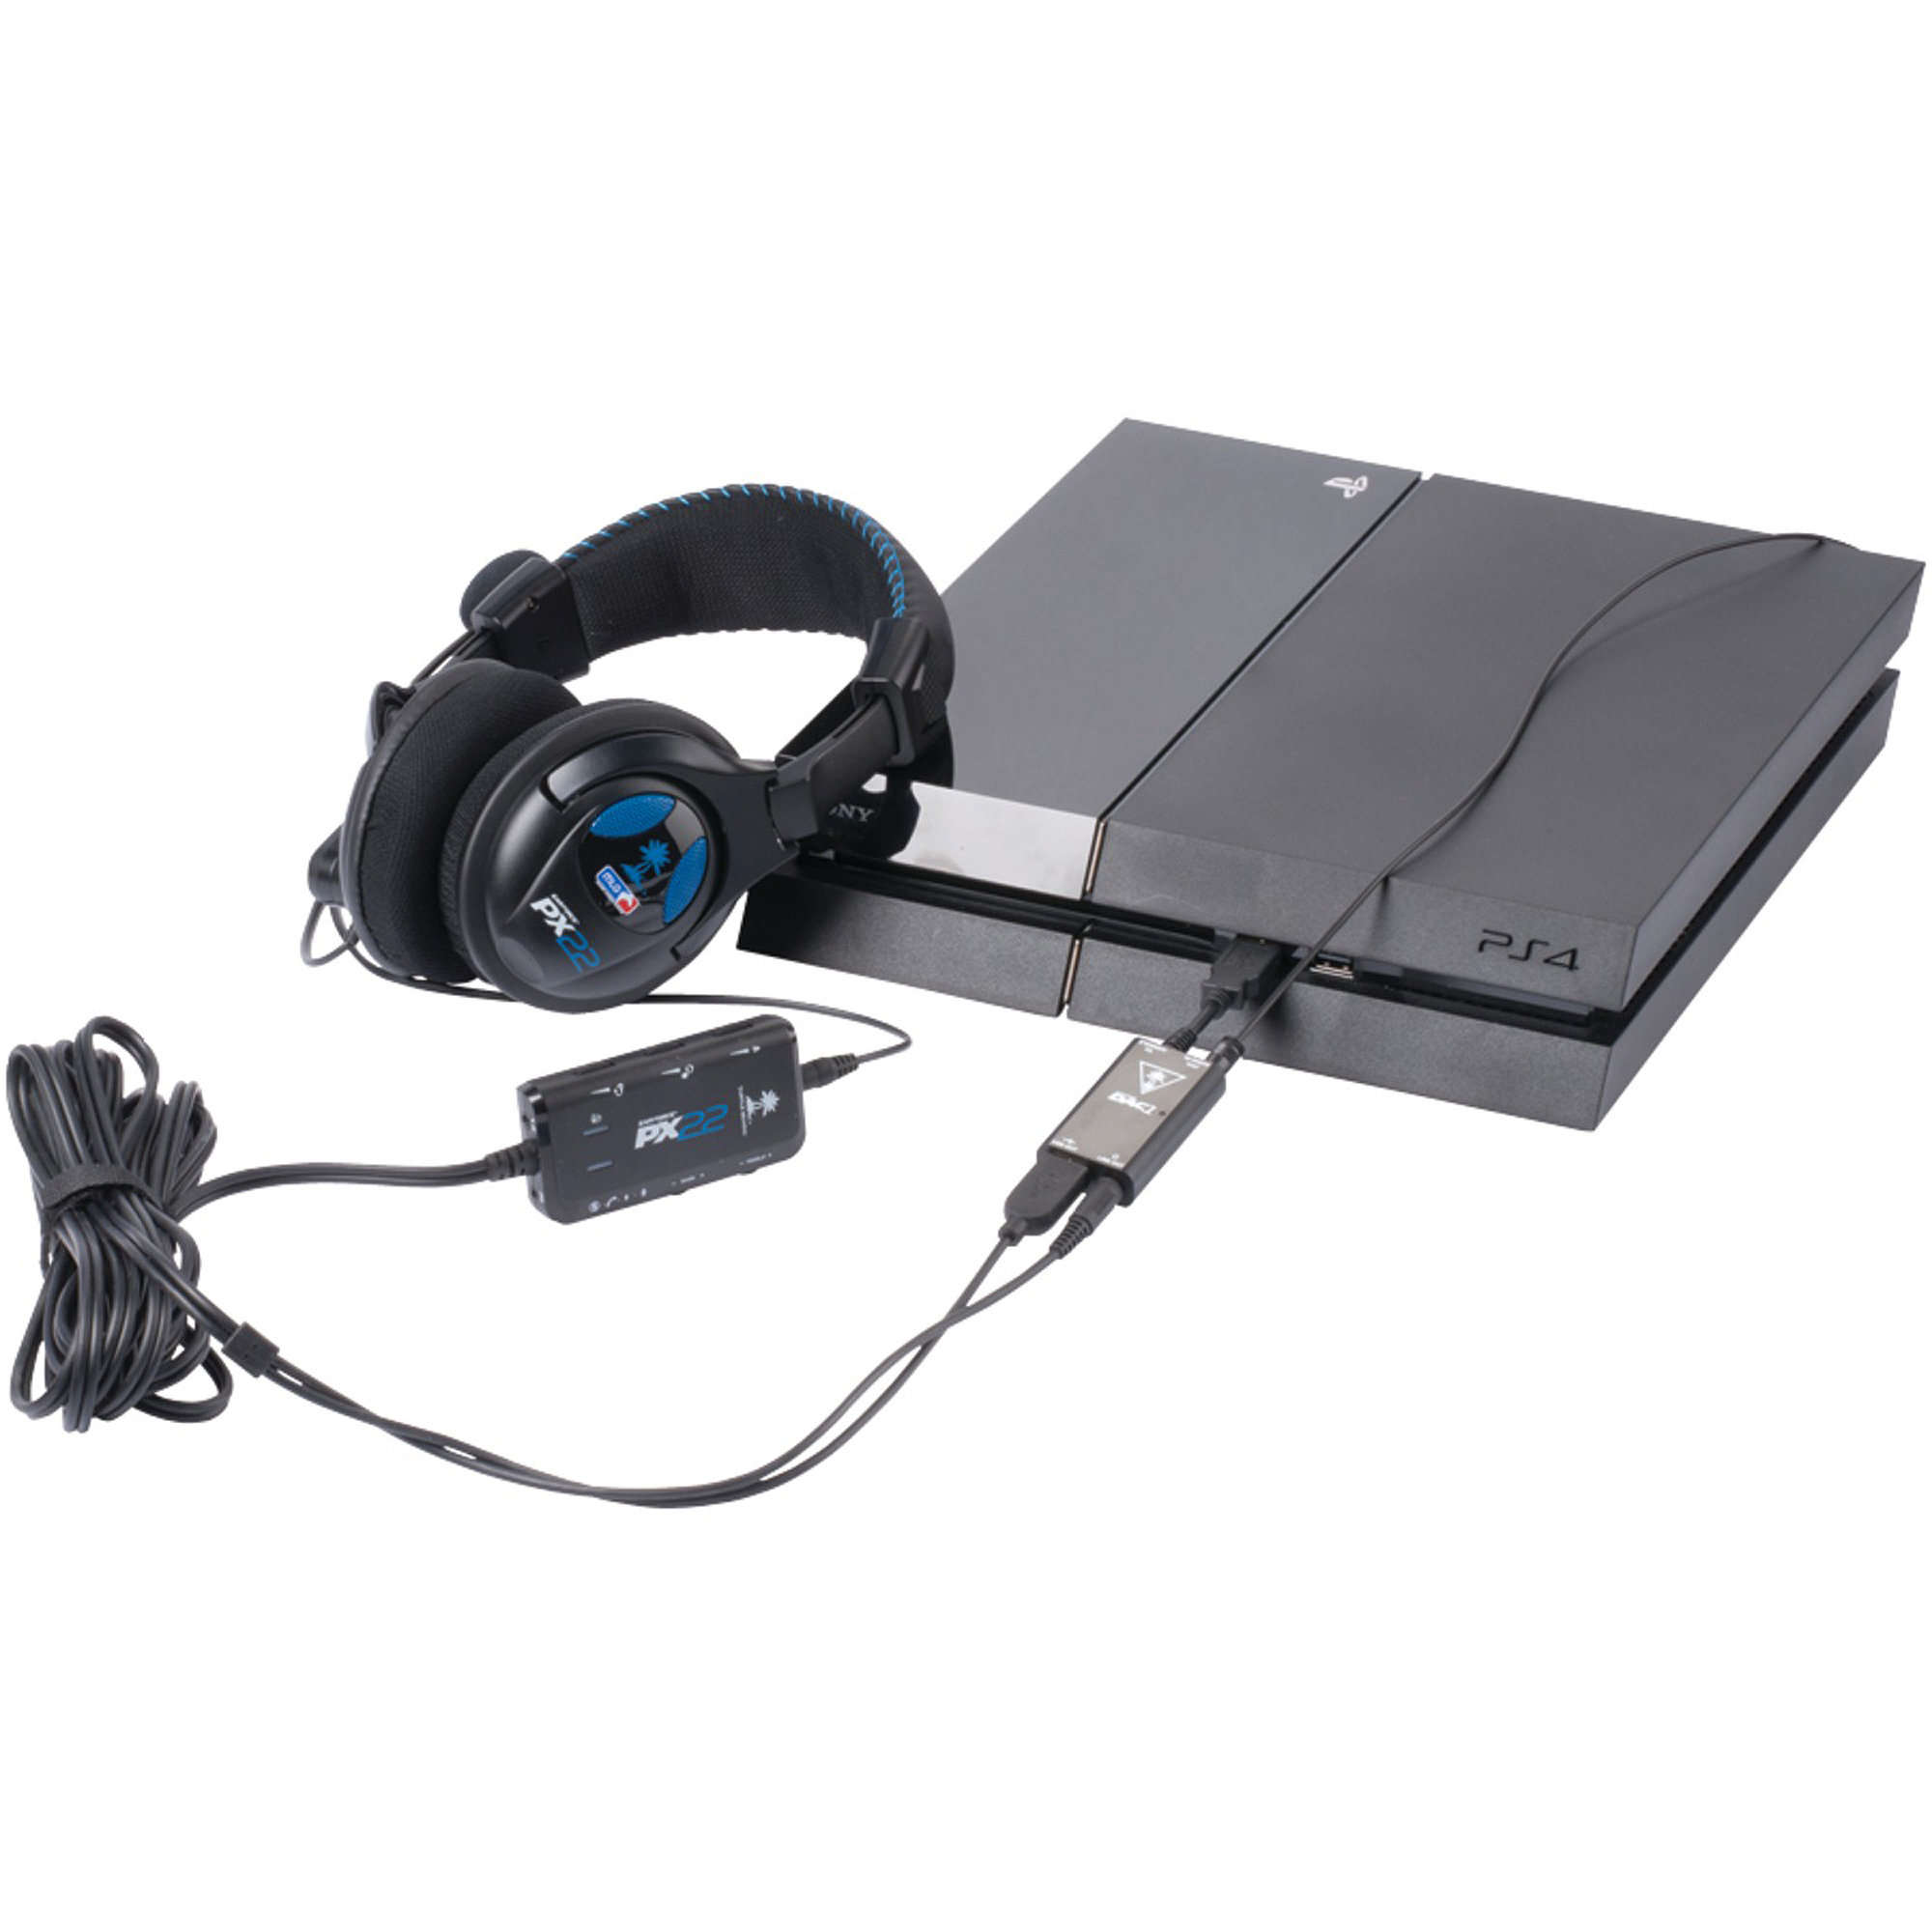 Turtle Beach Tbs-0115-01 PlayStation 4 Headset Upgrade Kit